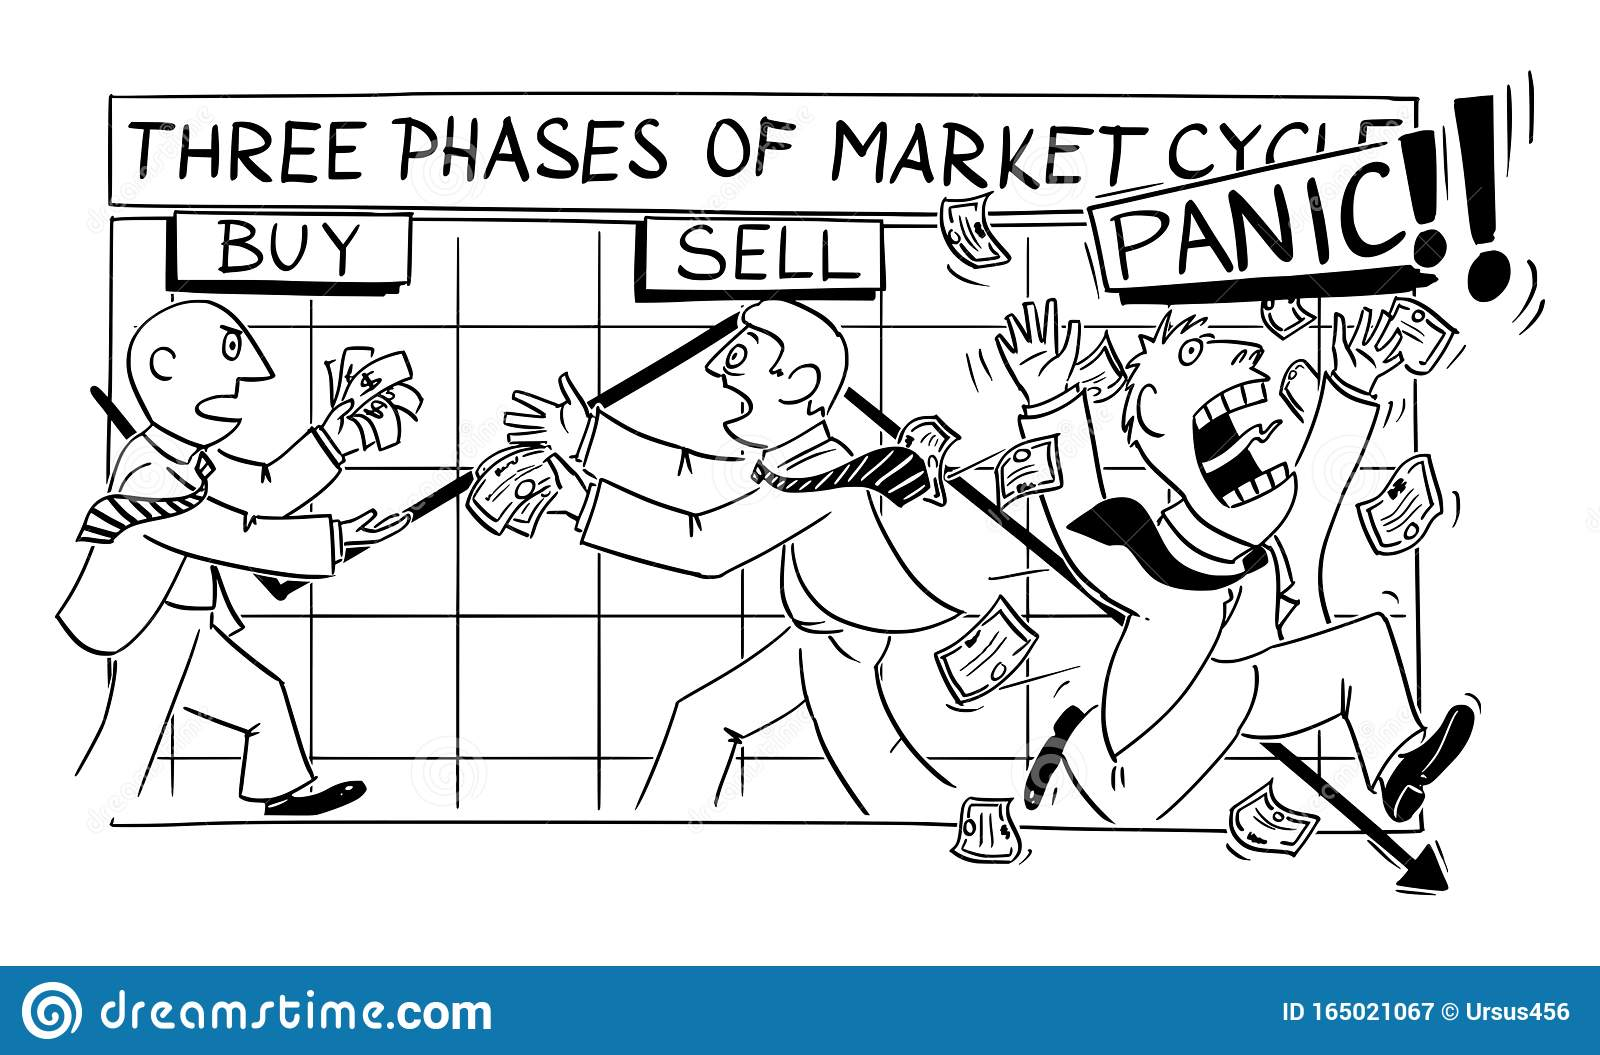 https://thumbs.dreamstime.com/z/vector-cartoon-stock-market-cycles-phases-investors-buy-sell-panic-funny-drawing-financial-graph-background-165021067.jpg